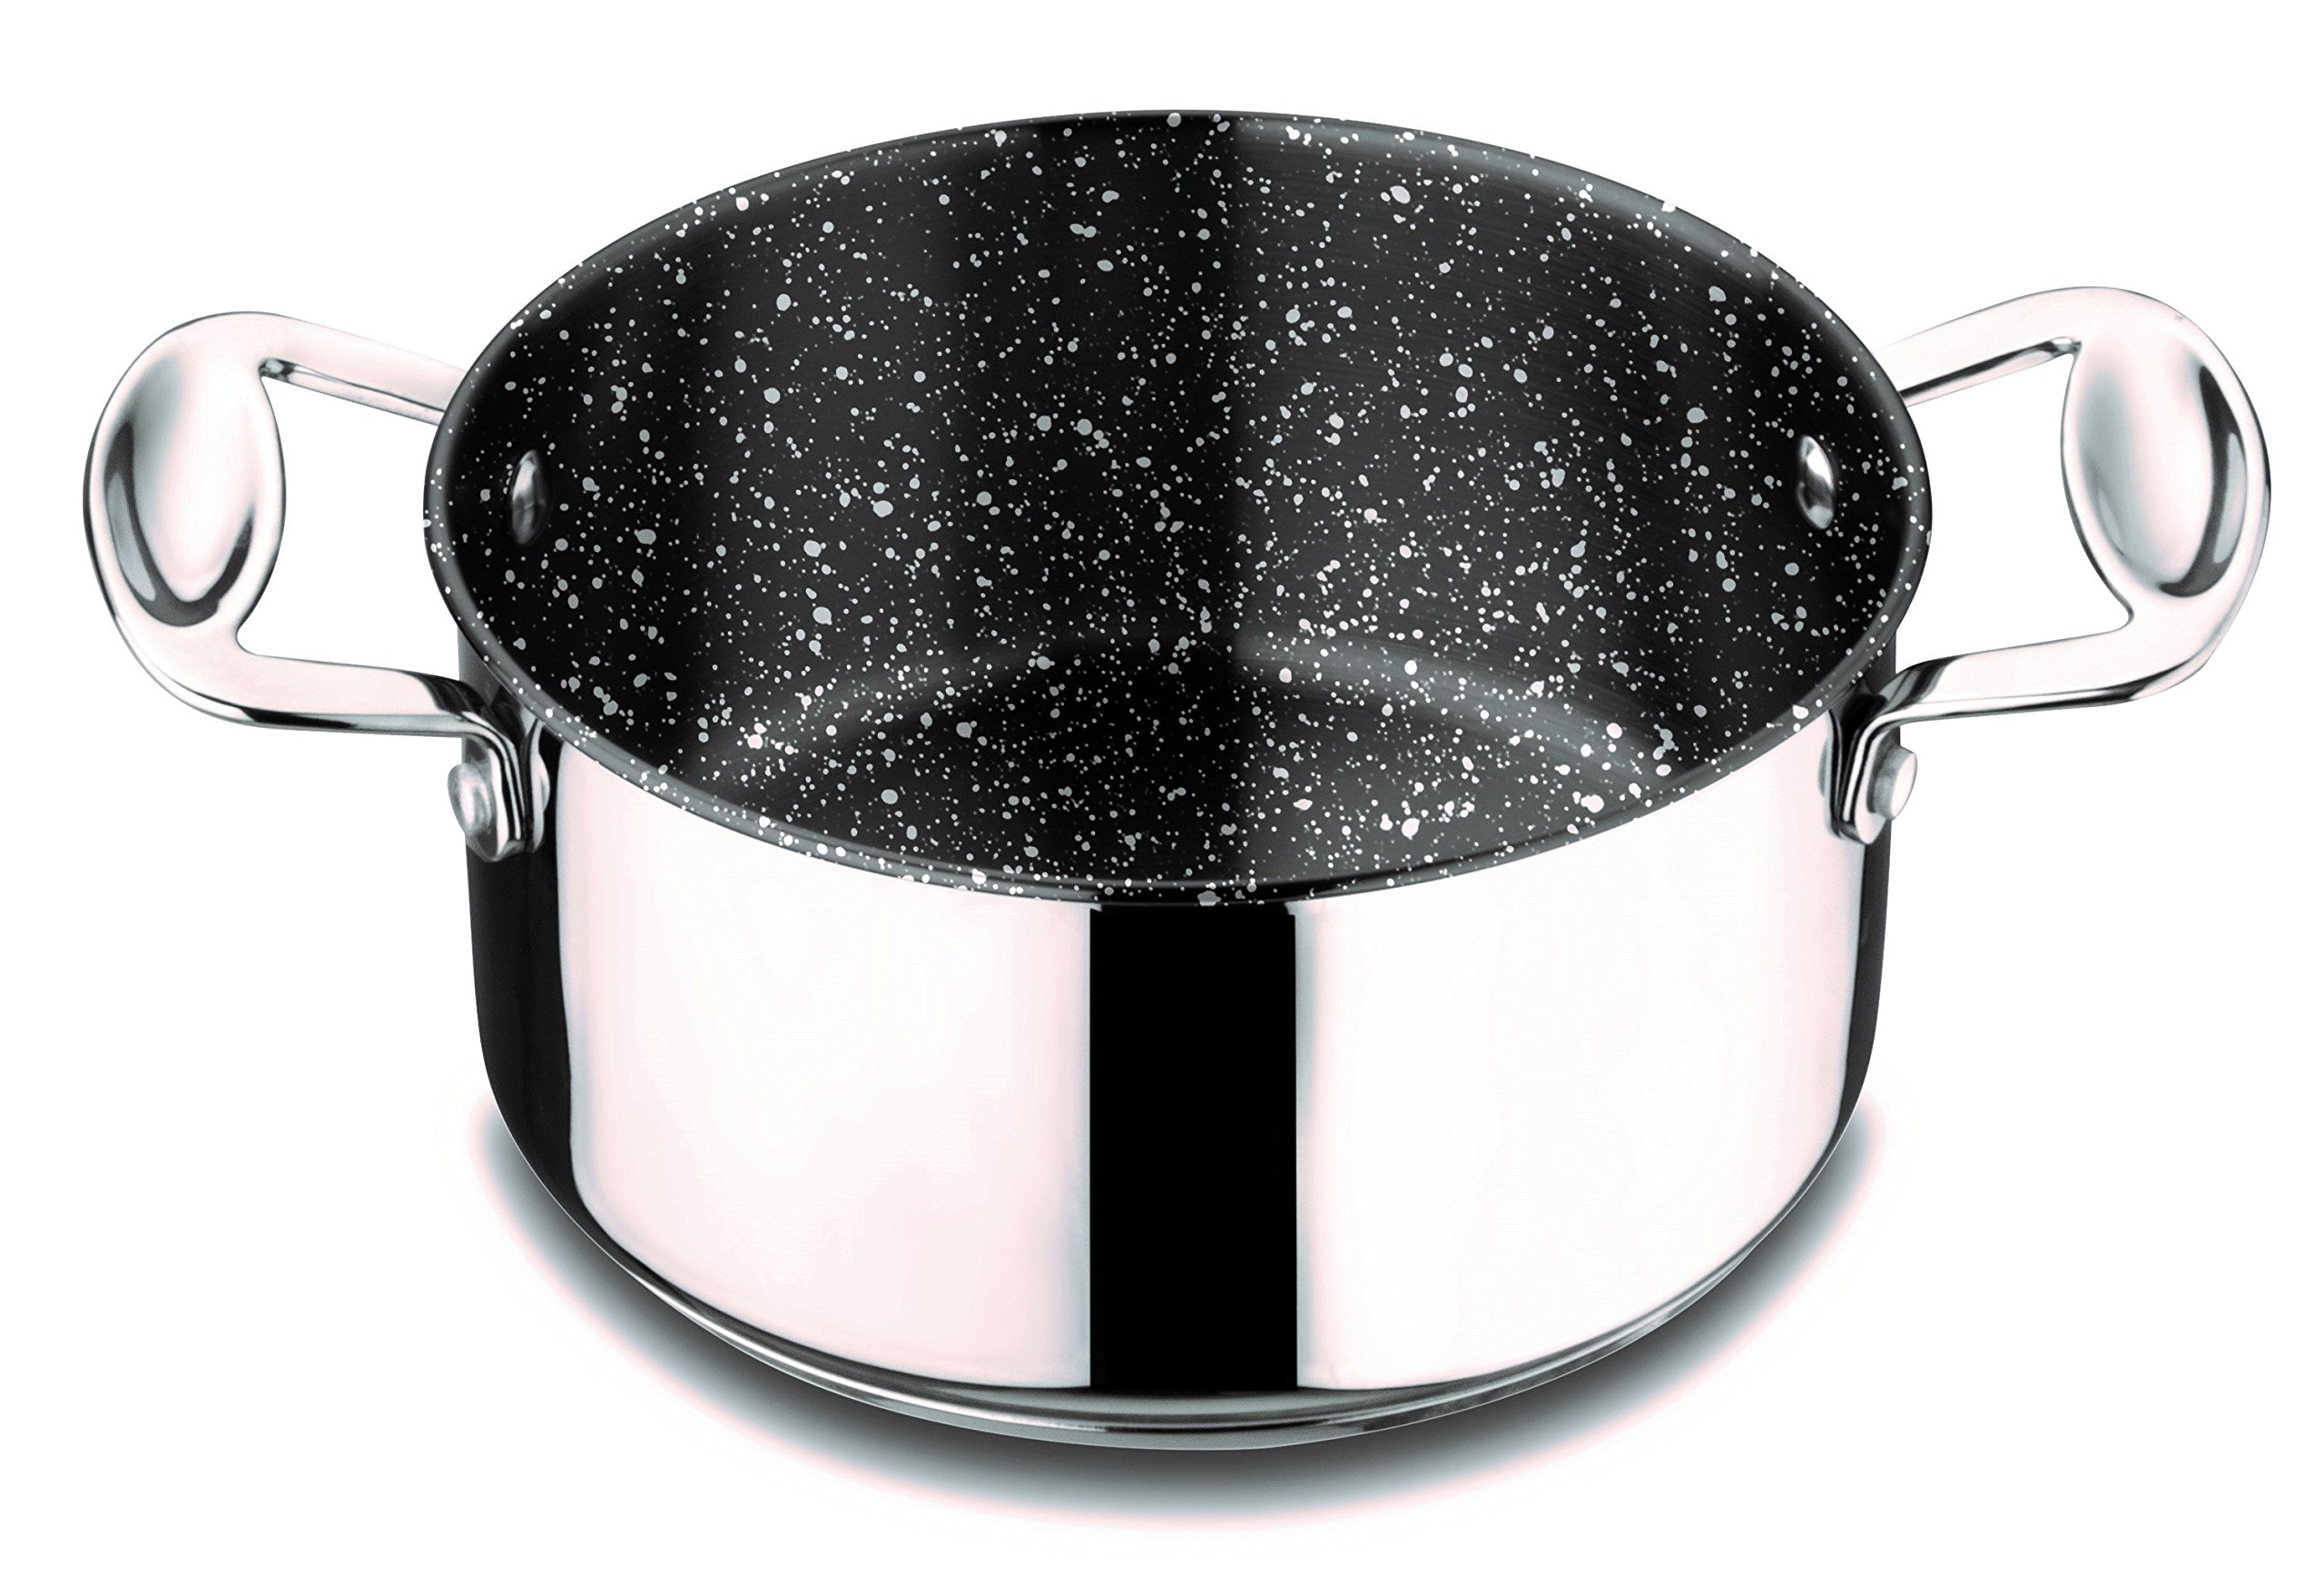 Mepra 30212122 Glamour Stone Casserole with Lid, 22cm, Stainless Steel